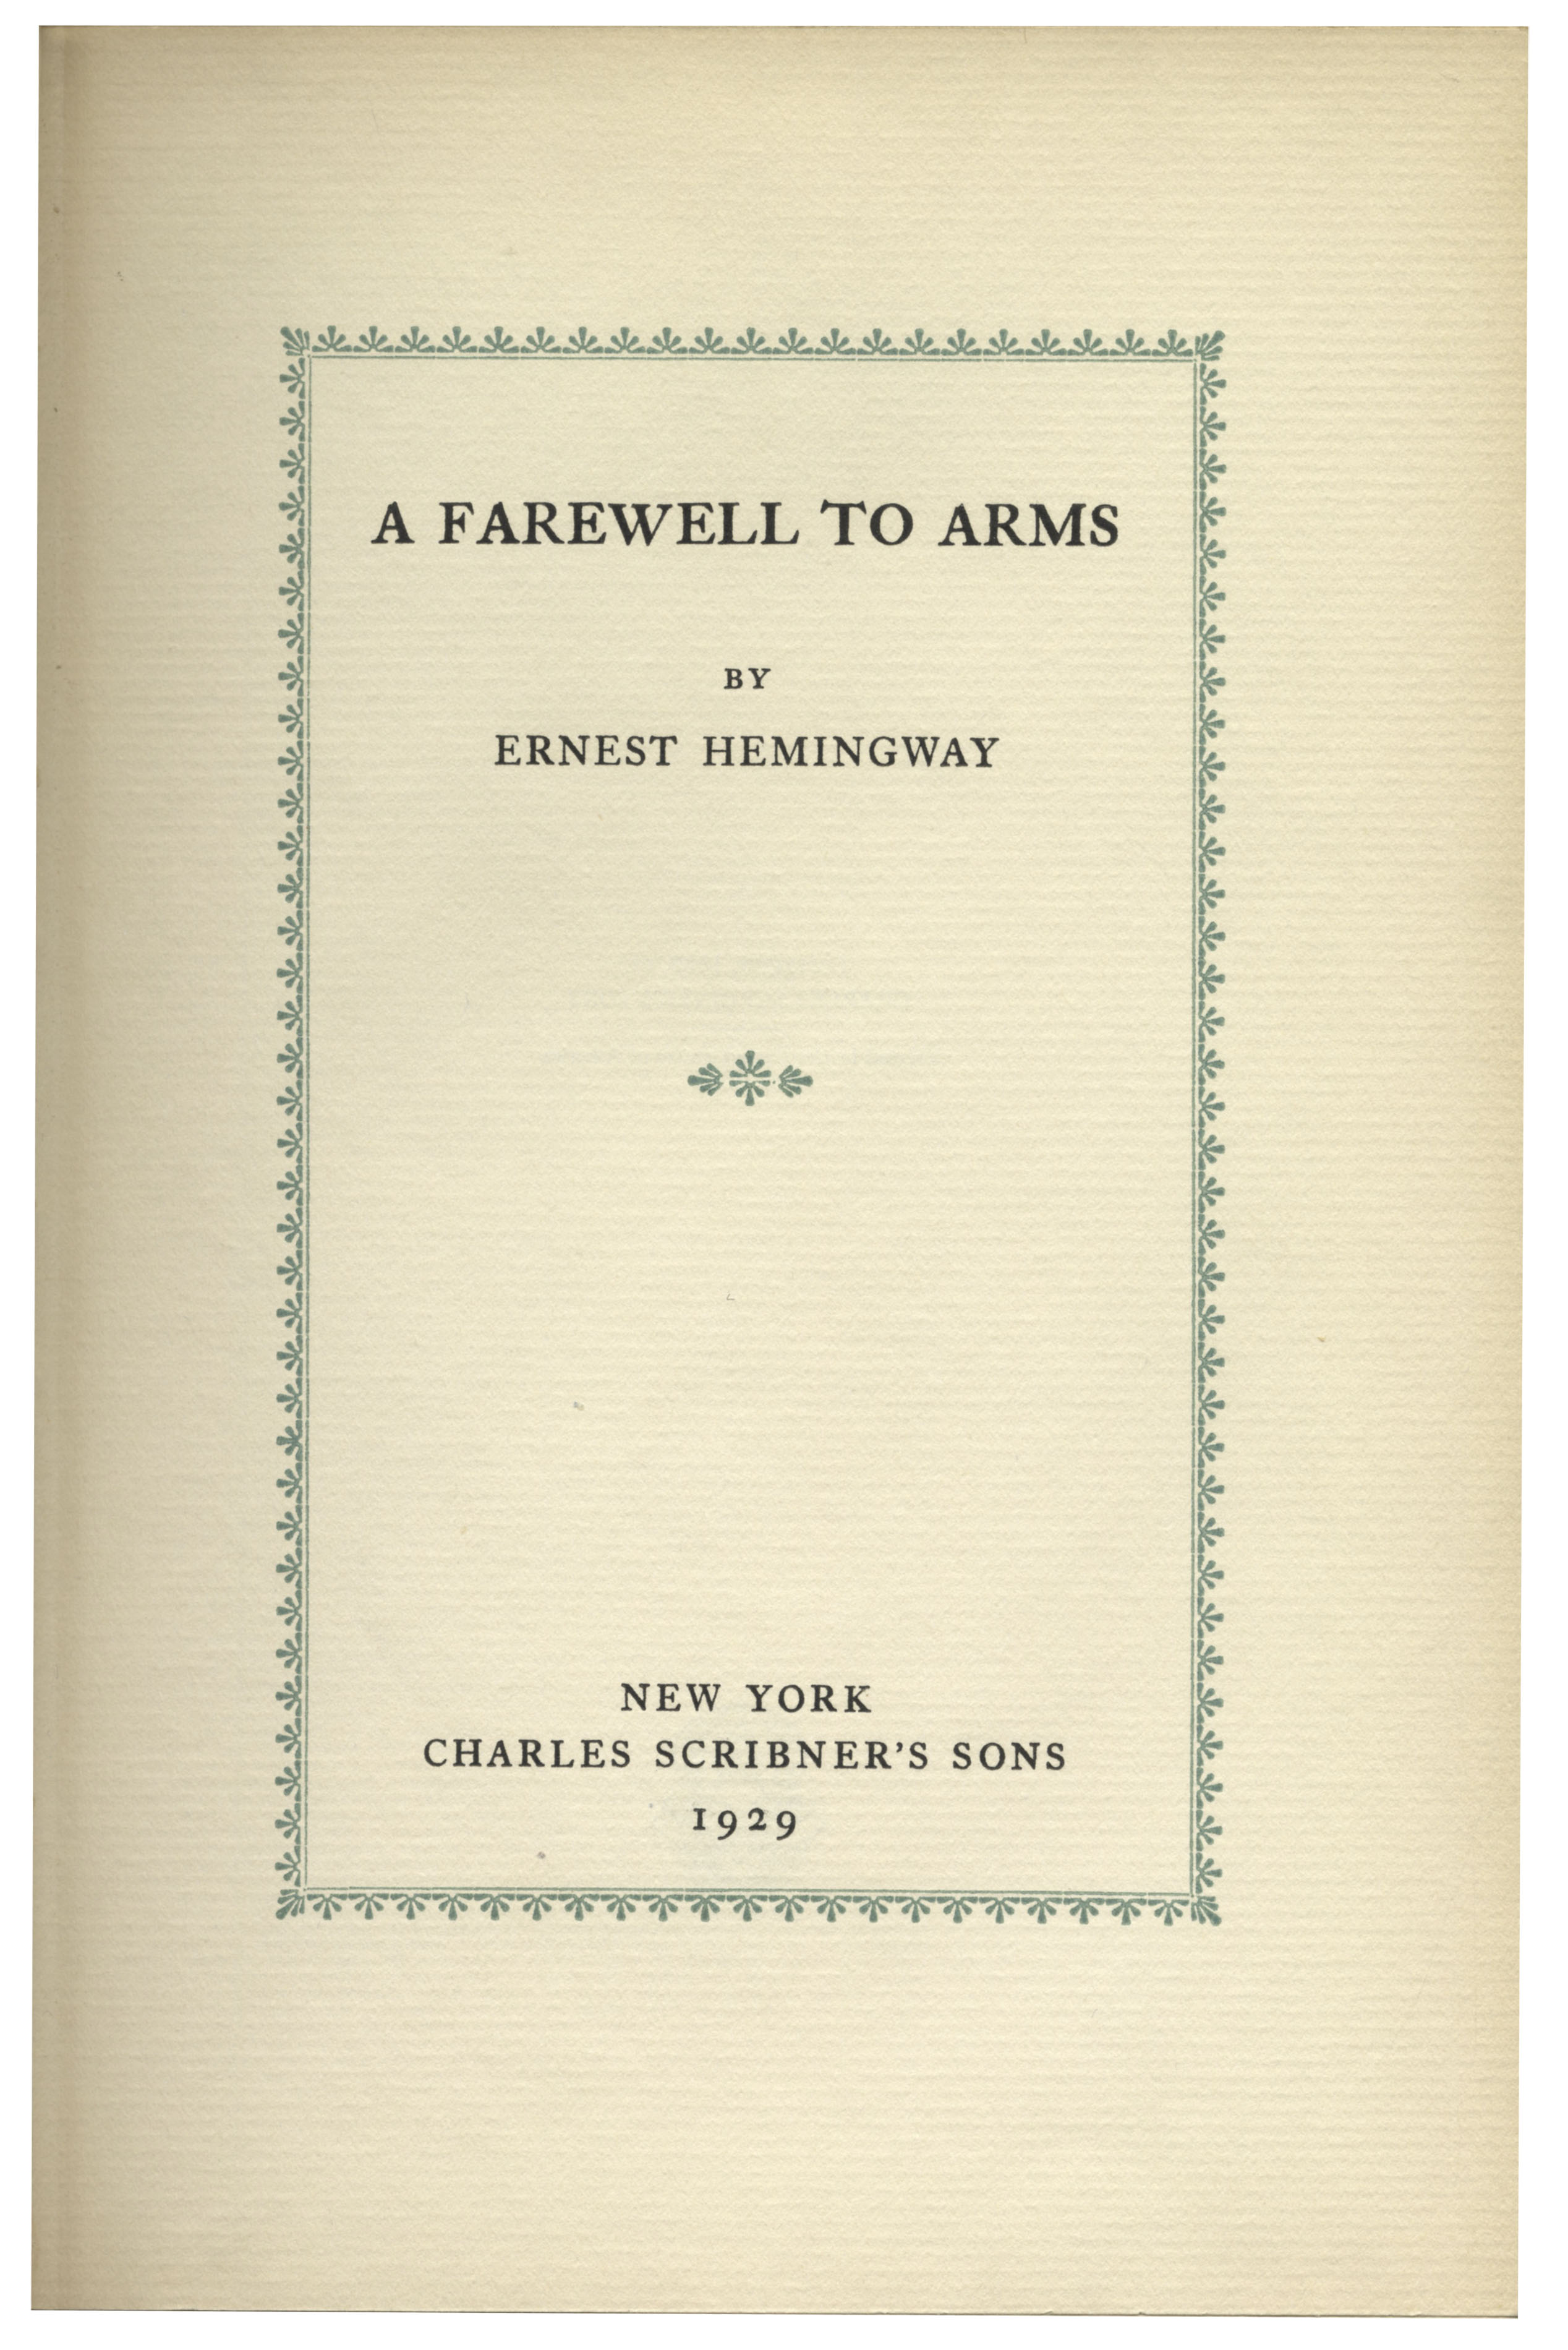 an overview of the novel a farewell to arms by ernest hemingway Farewell to arms summary harem knight a farewell to arms, book 1 lessons from a farewell to arms by ernest hemingway - duration.